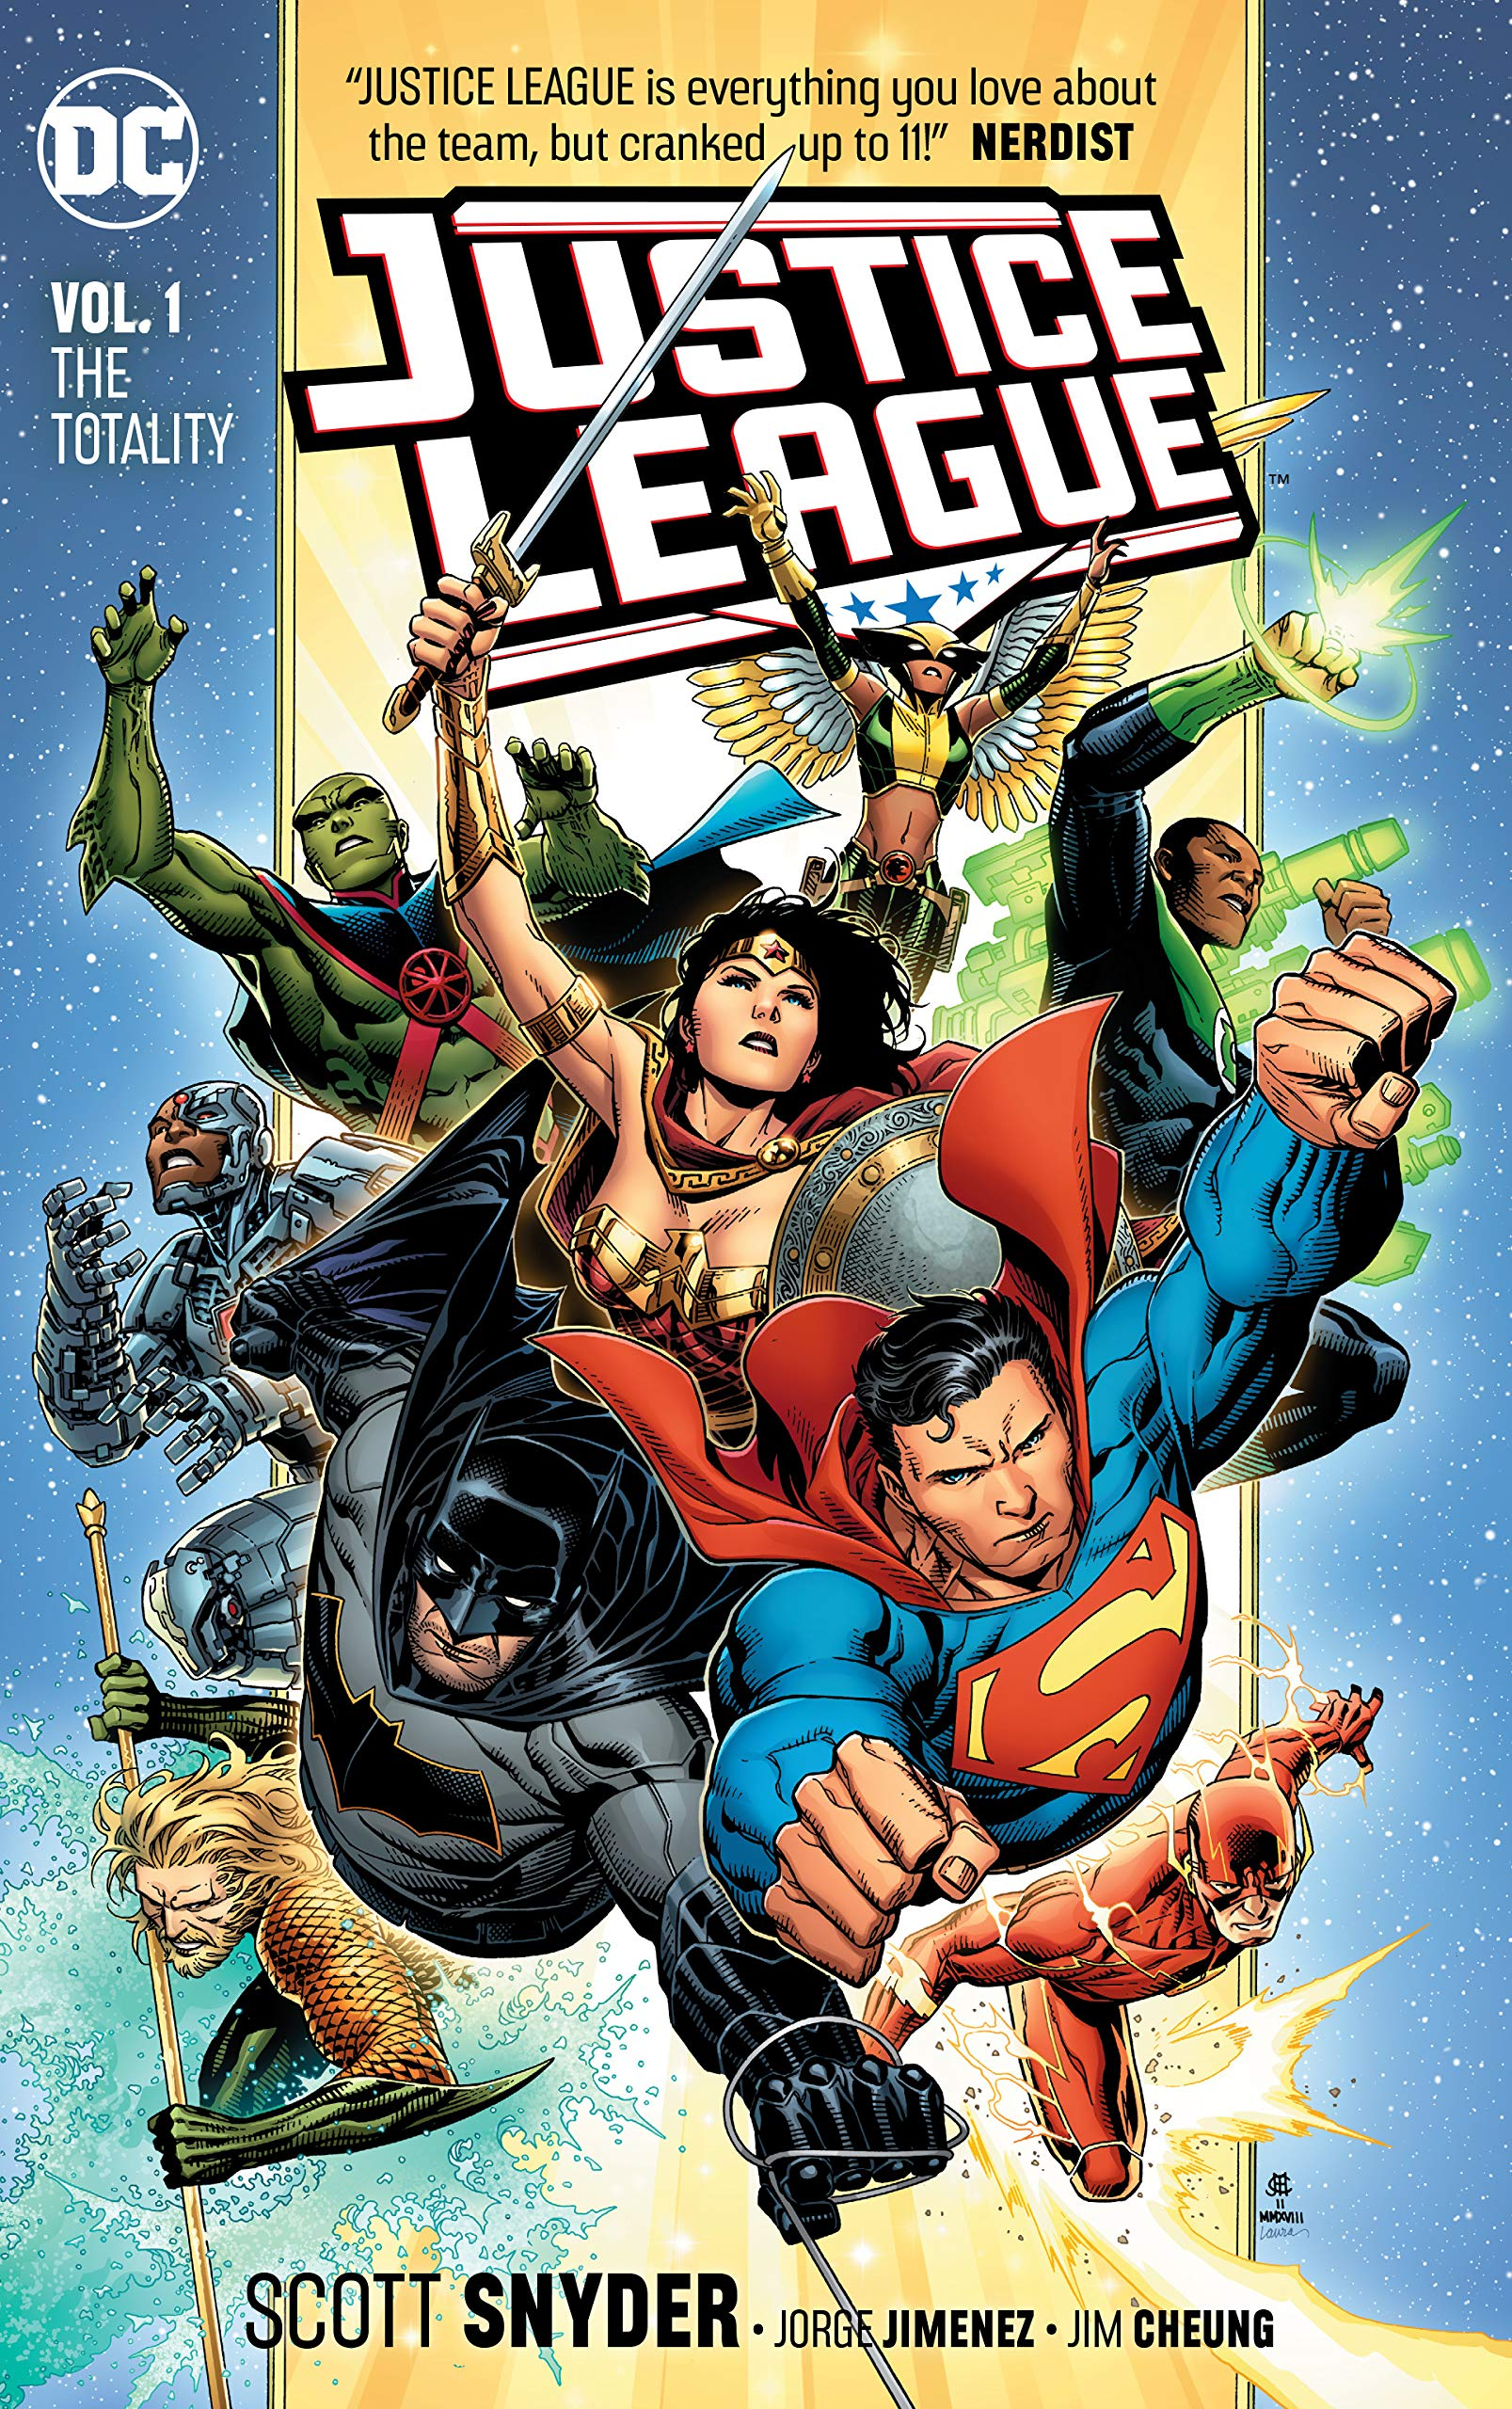 Justice League (Volume 1): The Totality